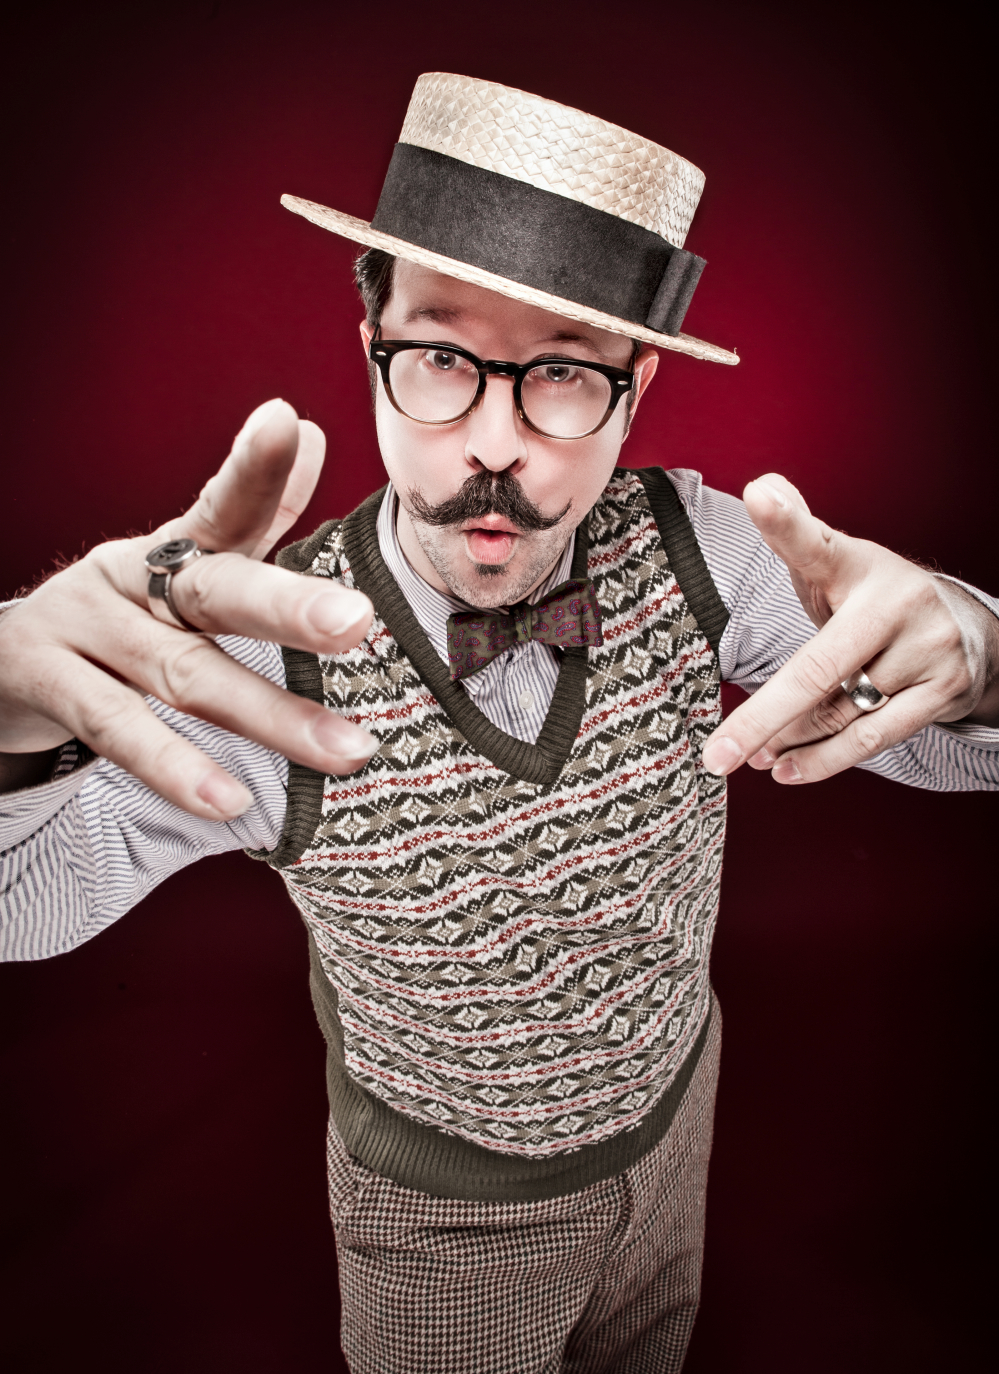 Mr B, gentleman rhymer, The Lucky 7 Club, The Shorely